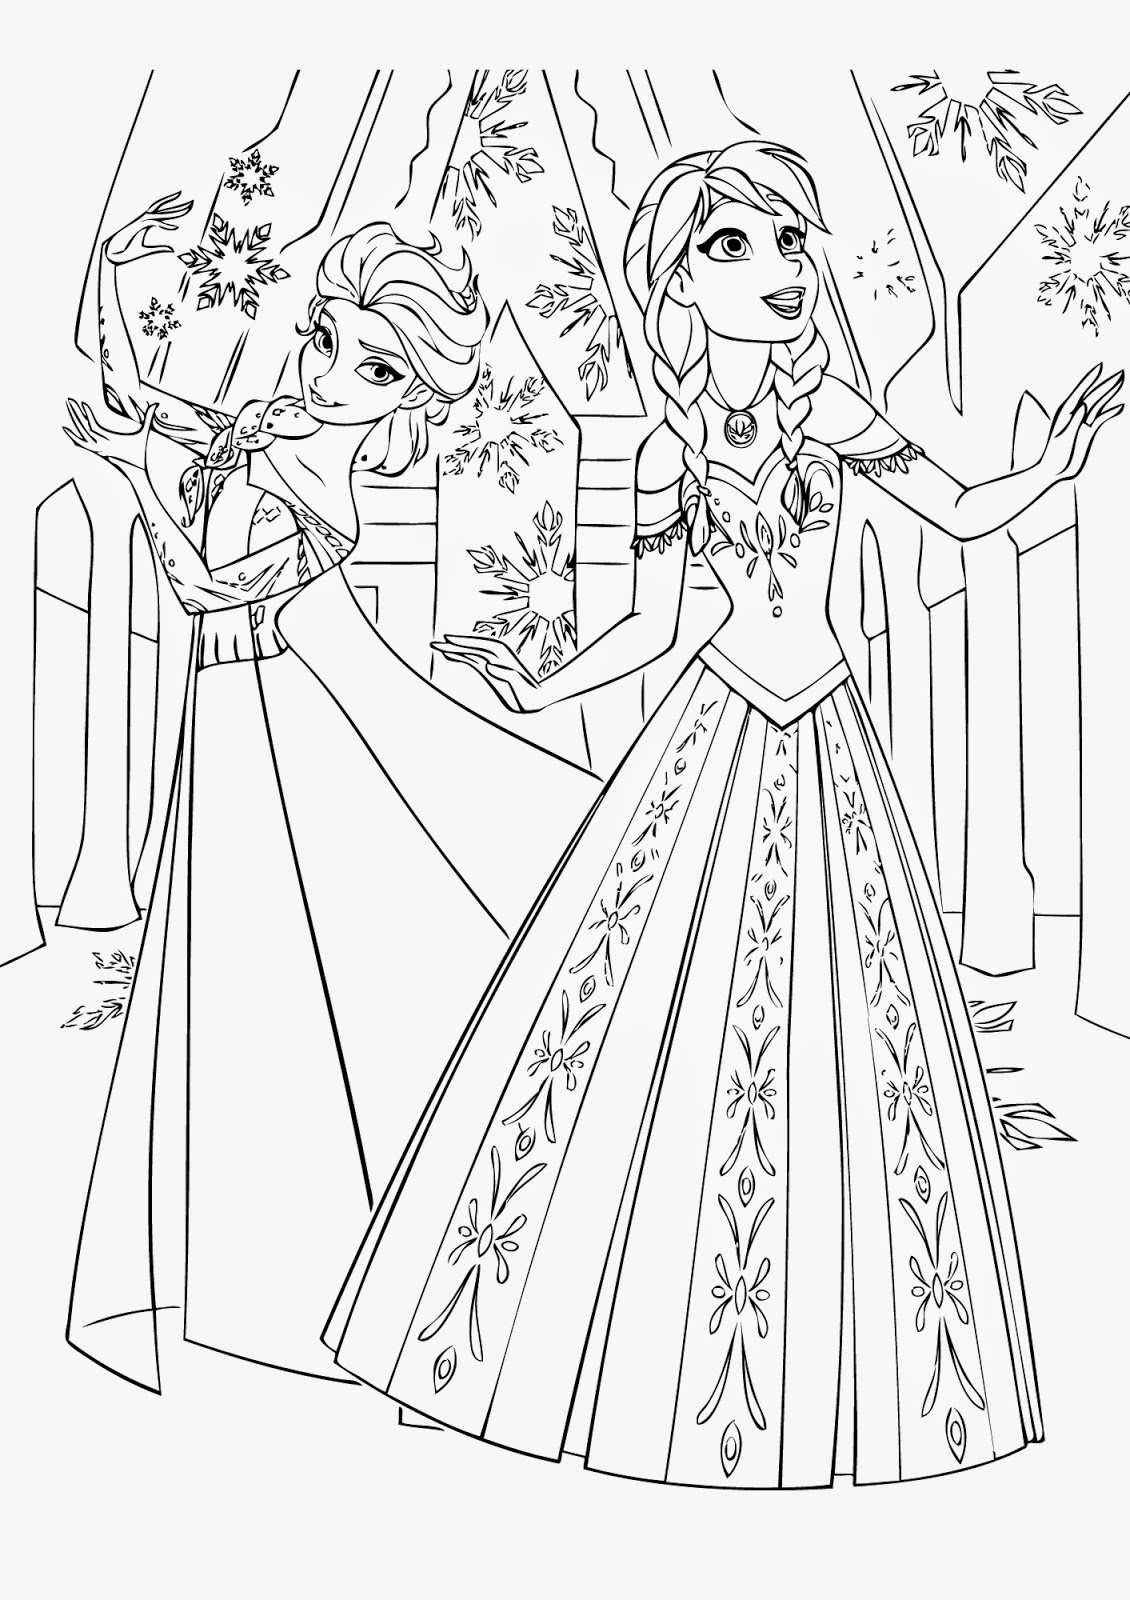 coloring pages to print frozen free printable coloring pages frozen 2015 lunawsome coloring to print pages frozen